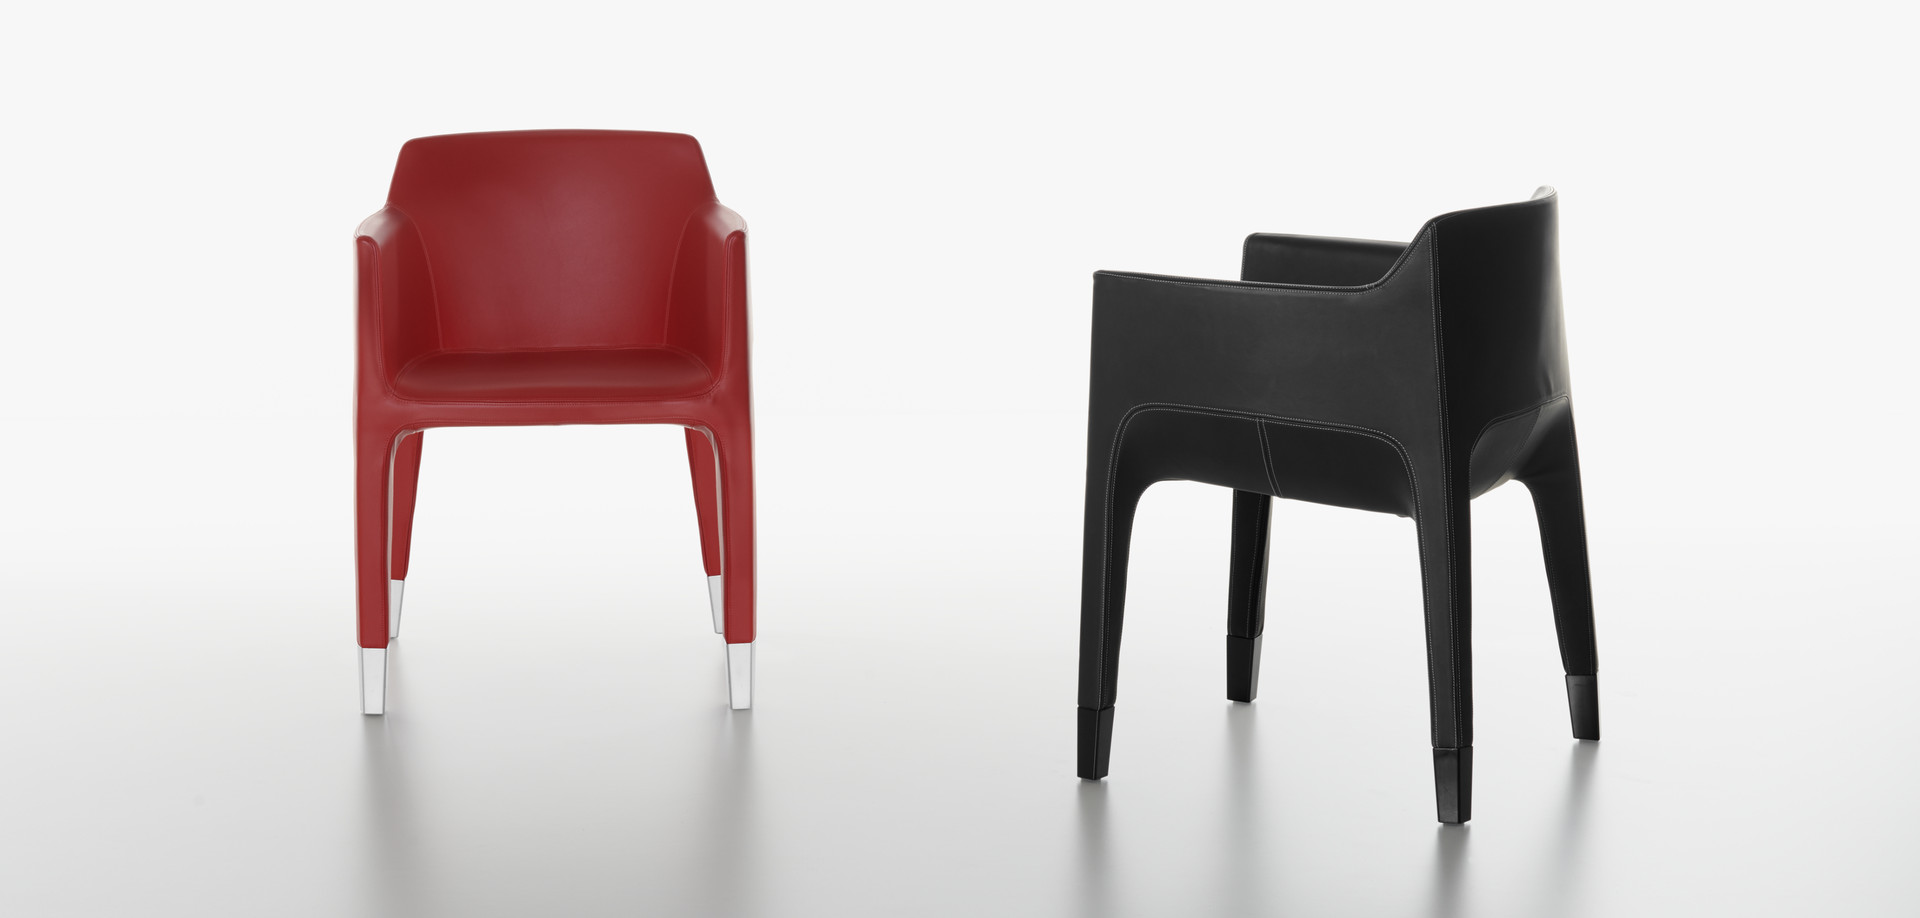 Plank - MON AMI armchair black and red